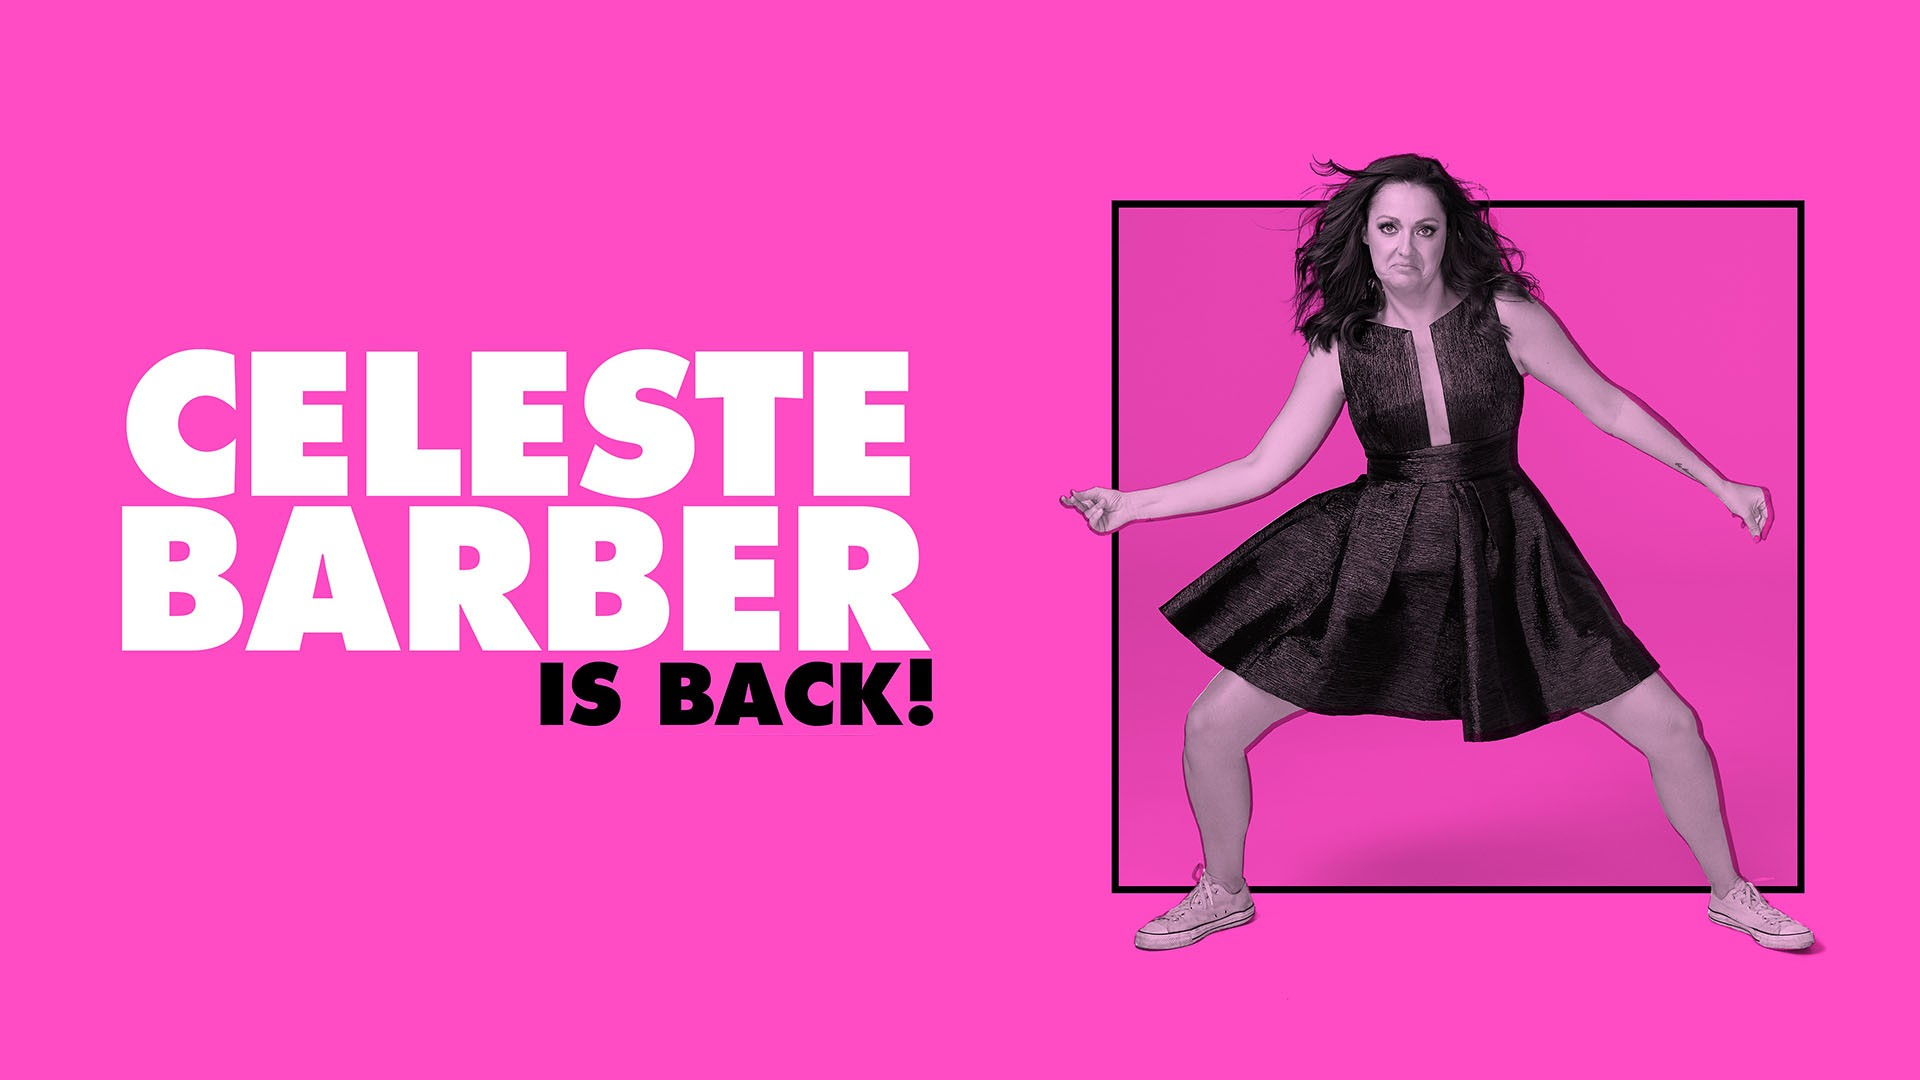 'Funniest Woman on Instagram' Celeste Barber Brings Live Comedy Show to the Tobin